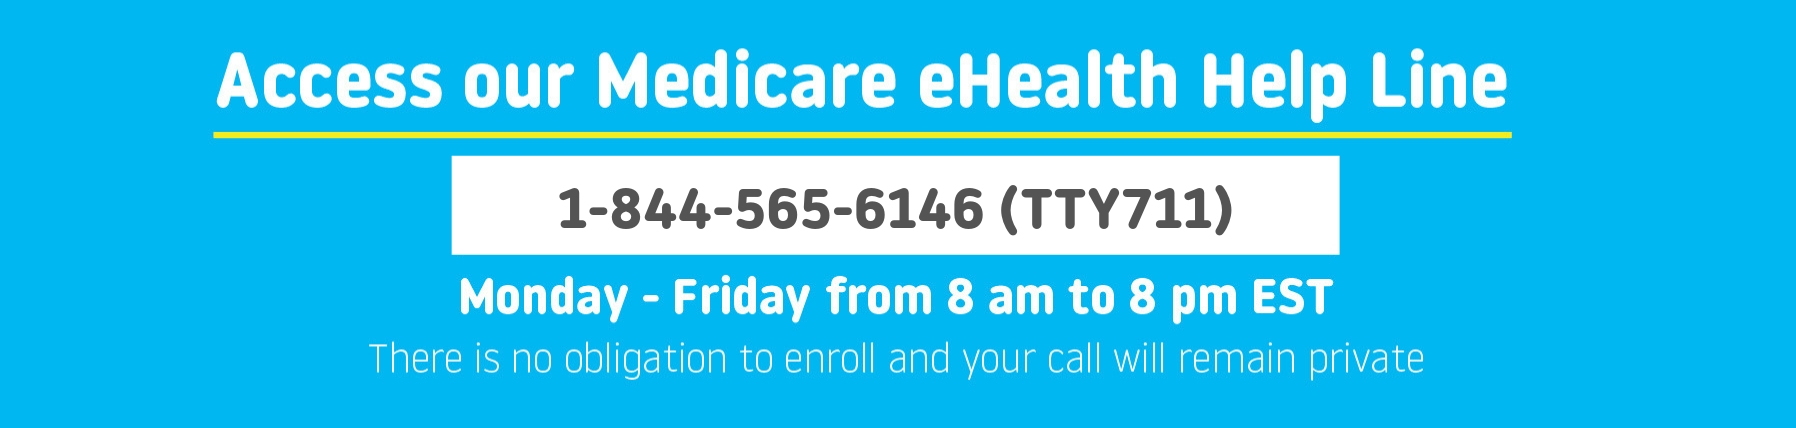 eHealth Website HelpLine